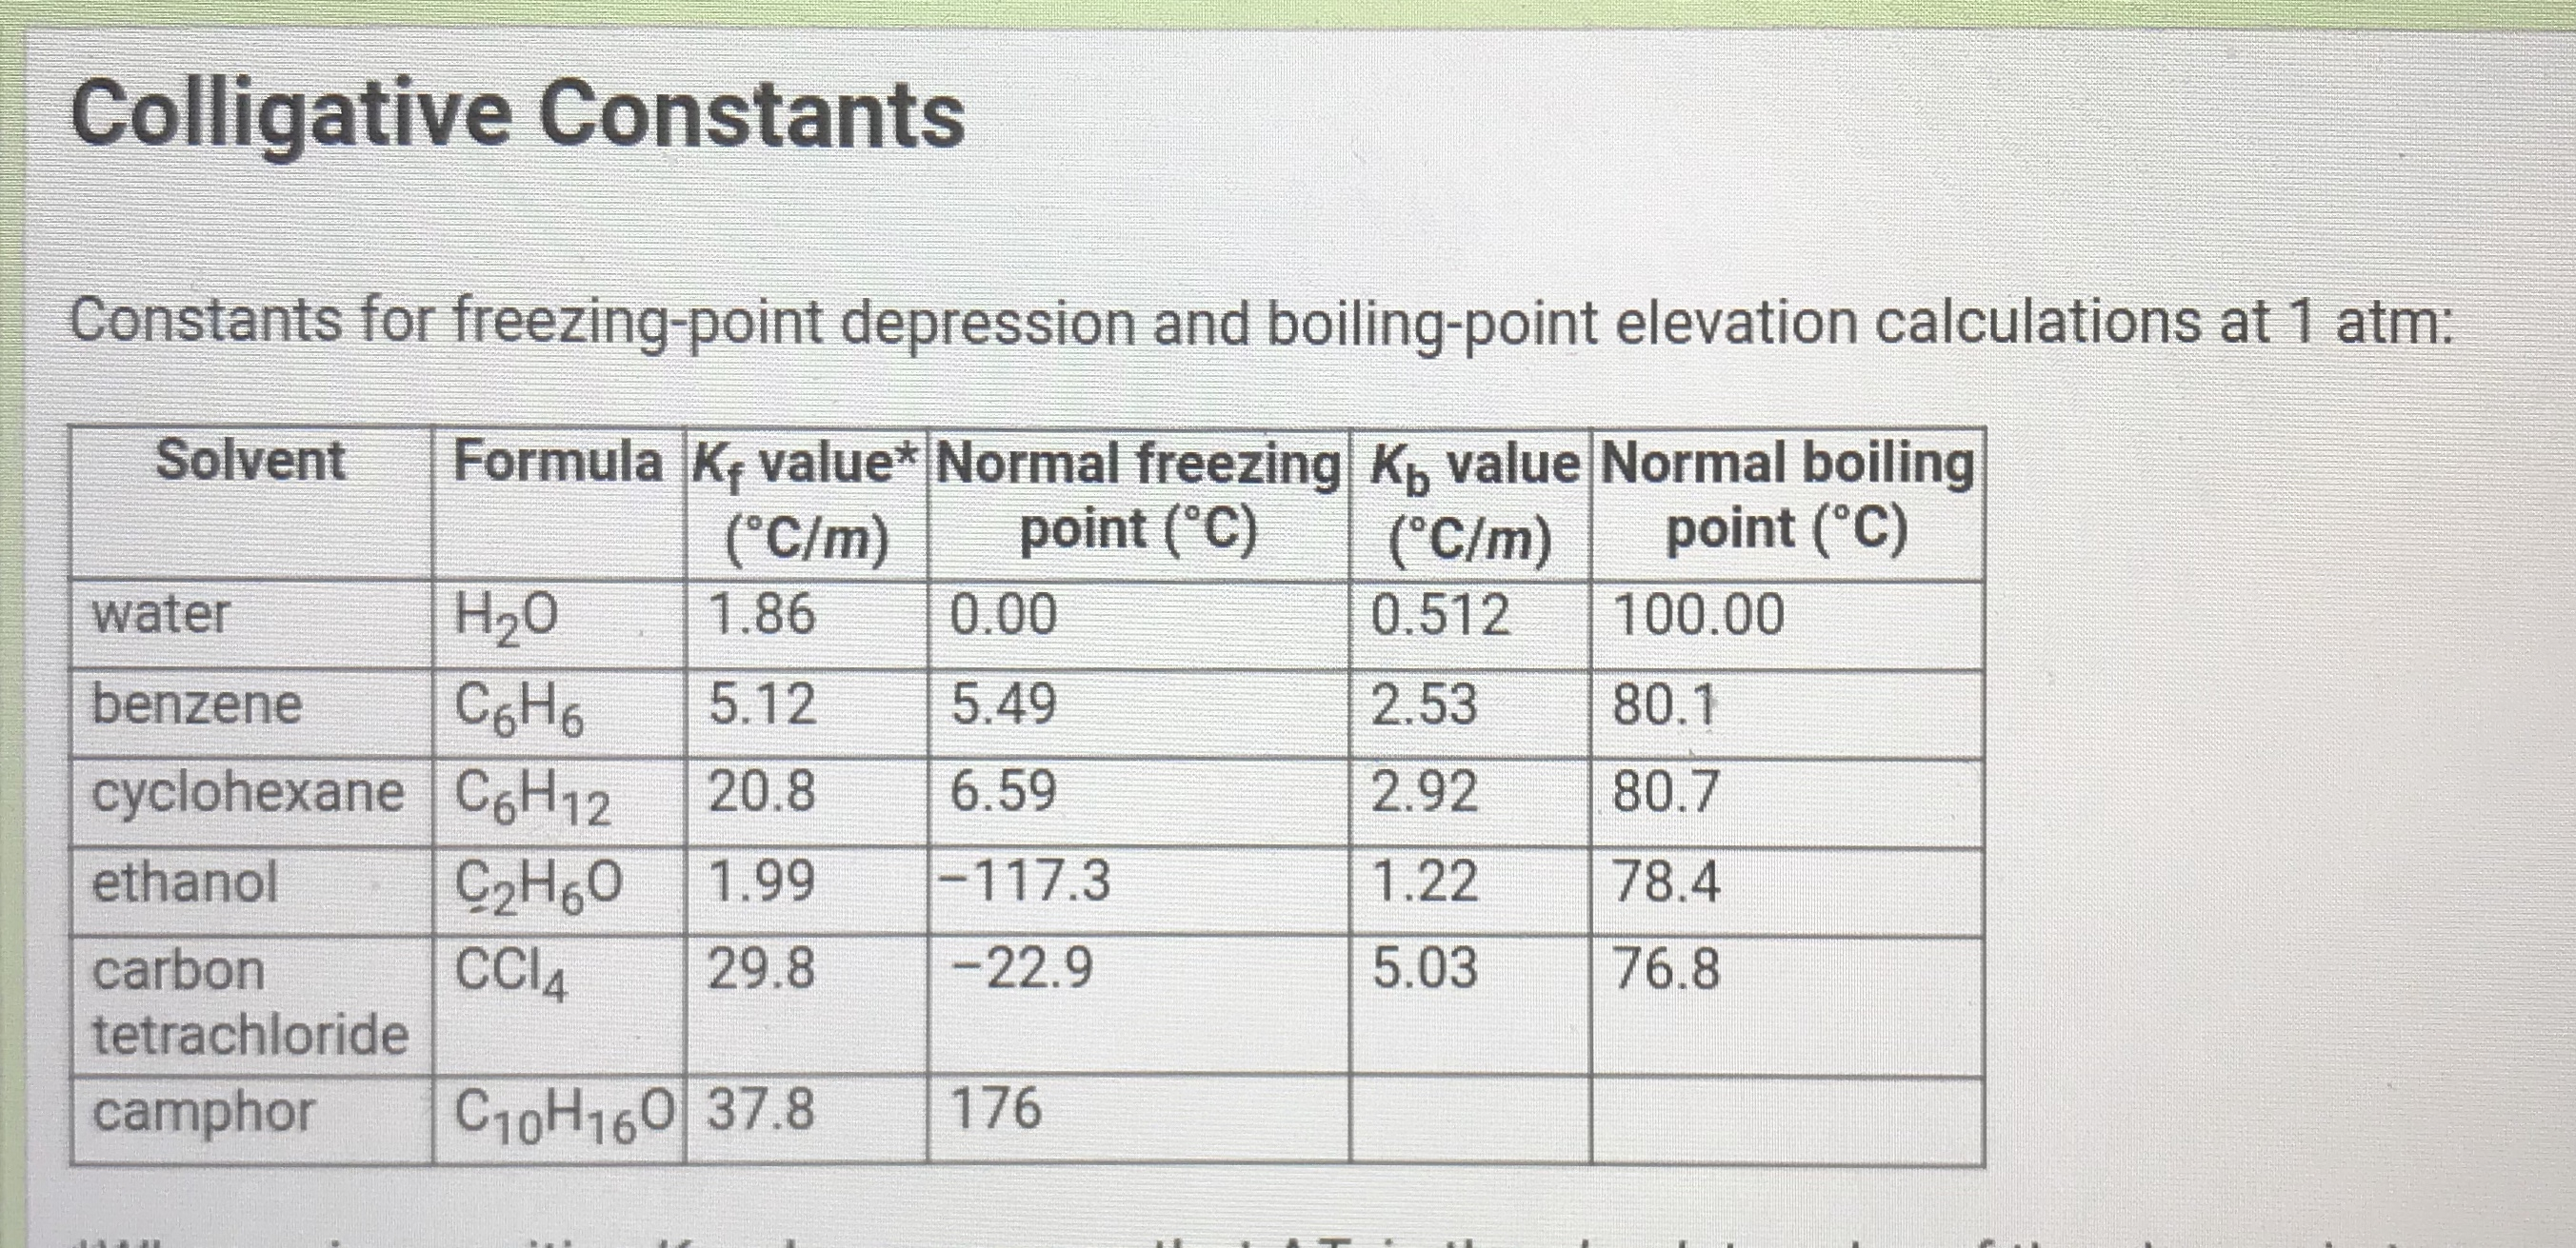 Colligative Constants Constants for freezing-point depression and boiling-point elevation calculations at 1 atm: Formula K, value* Normal freezing K, value Normal boiling point (°C) Solvent (°C/m) (°C/m) point (°C) water H20 1.86 0.00 0.512 100.00 benzene C6H6 5.12 5.49 2.53 80.1 cyclohexane C6H12 20.8 6.59 2.92 80.7 ethanol -117.3 C2H60 CCIA 1.99 1.22 78.4 carbon 29.8 -22.9 5.03 76.8 tetrachloride camphor C10H160 37.8 176